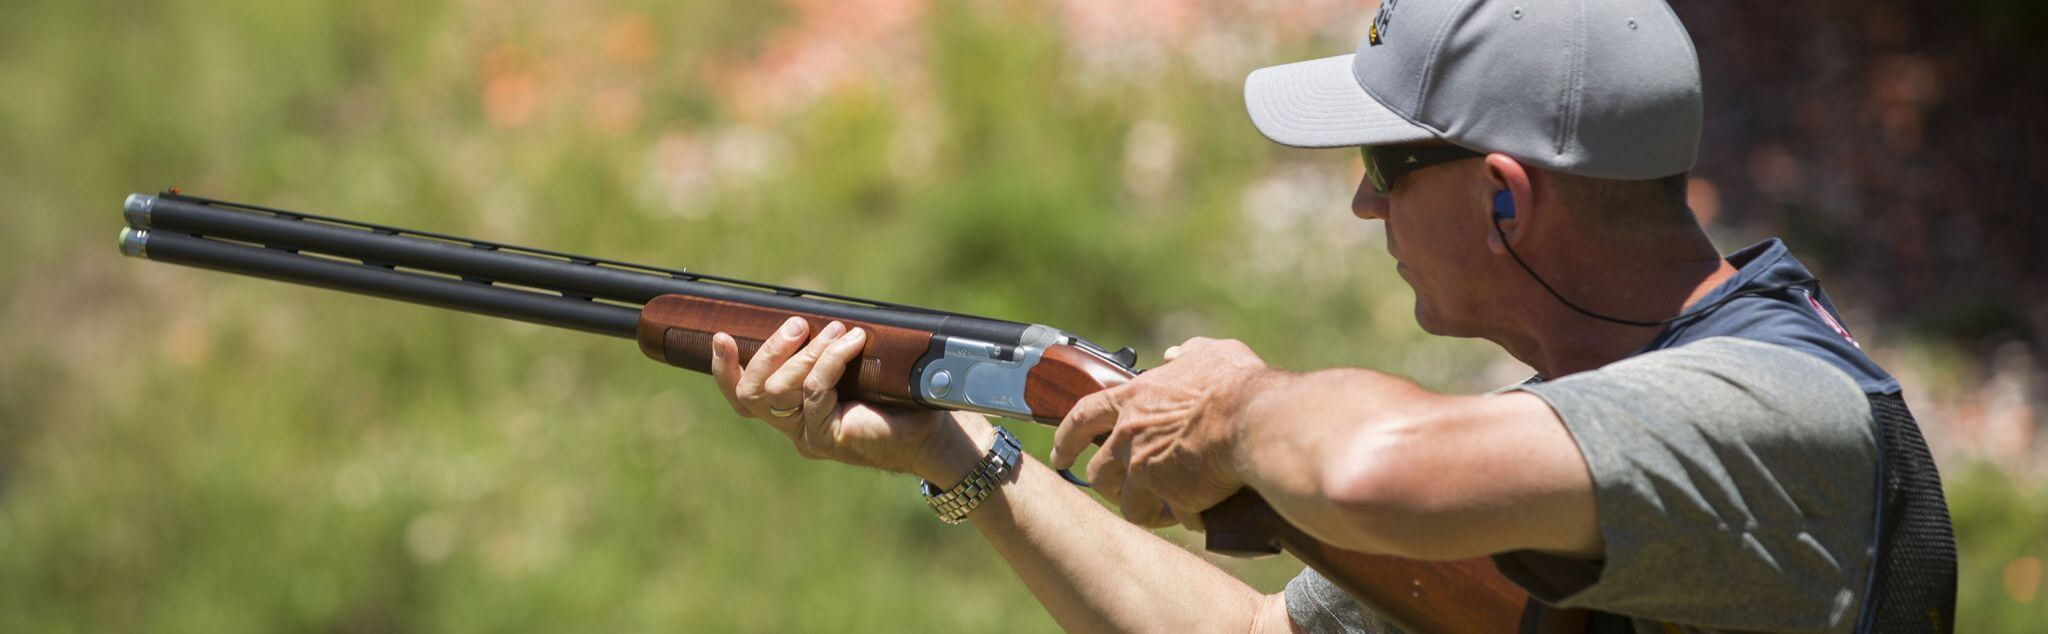 Clay Pigeon Shooting in Argyll and Bute